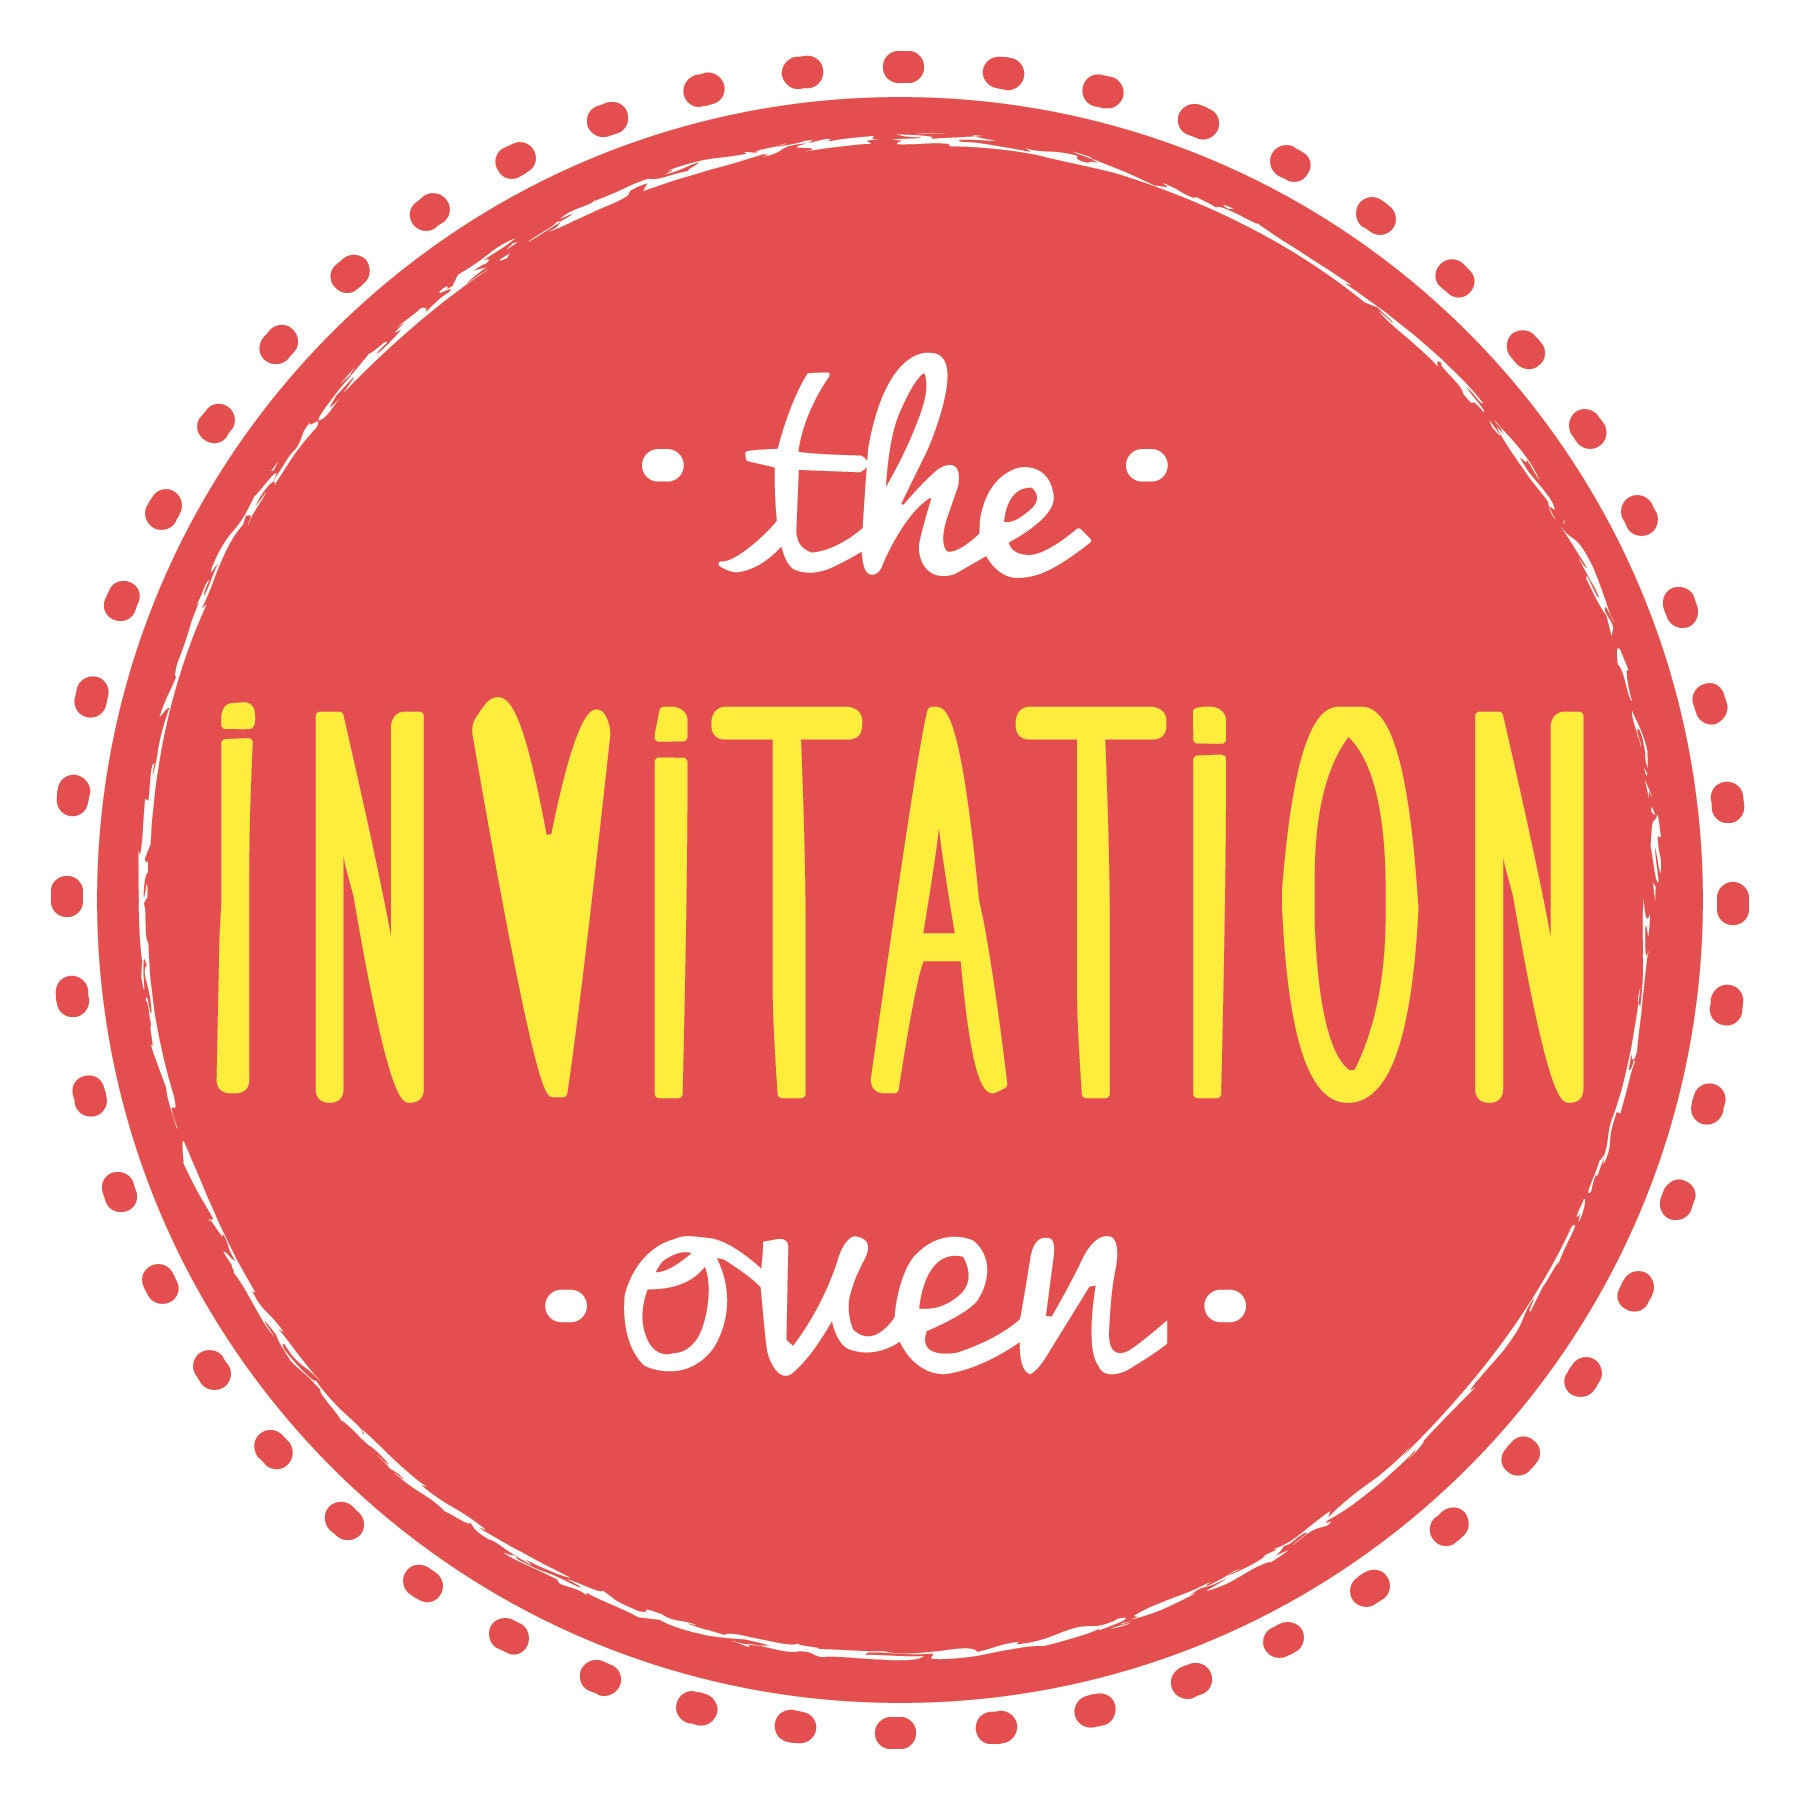 Printable and Customizable Invitations by TheInvitationOven